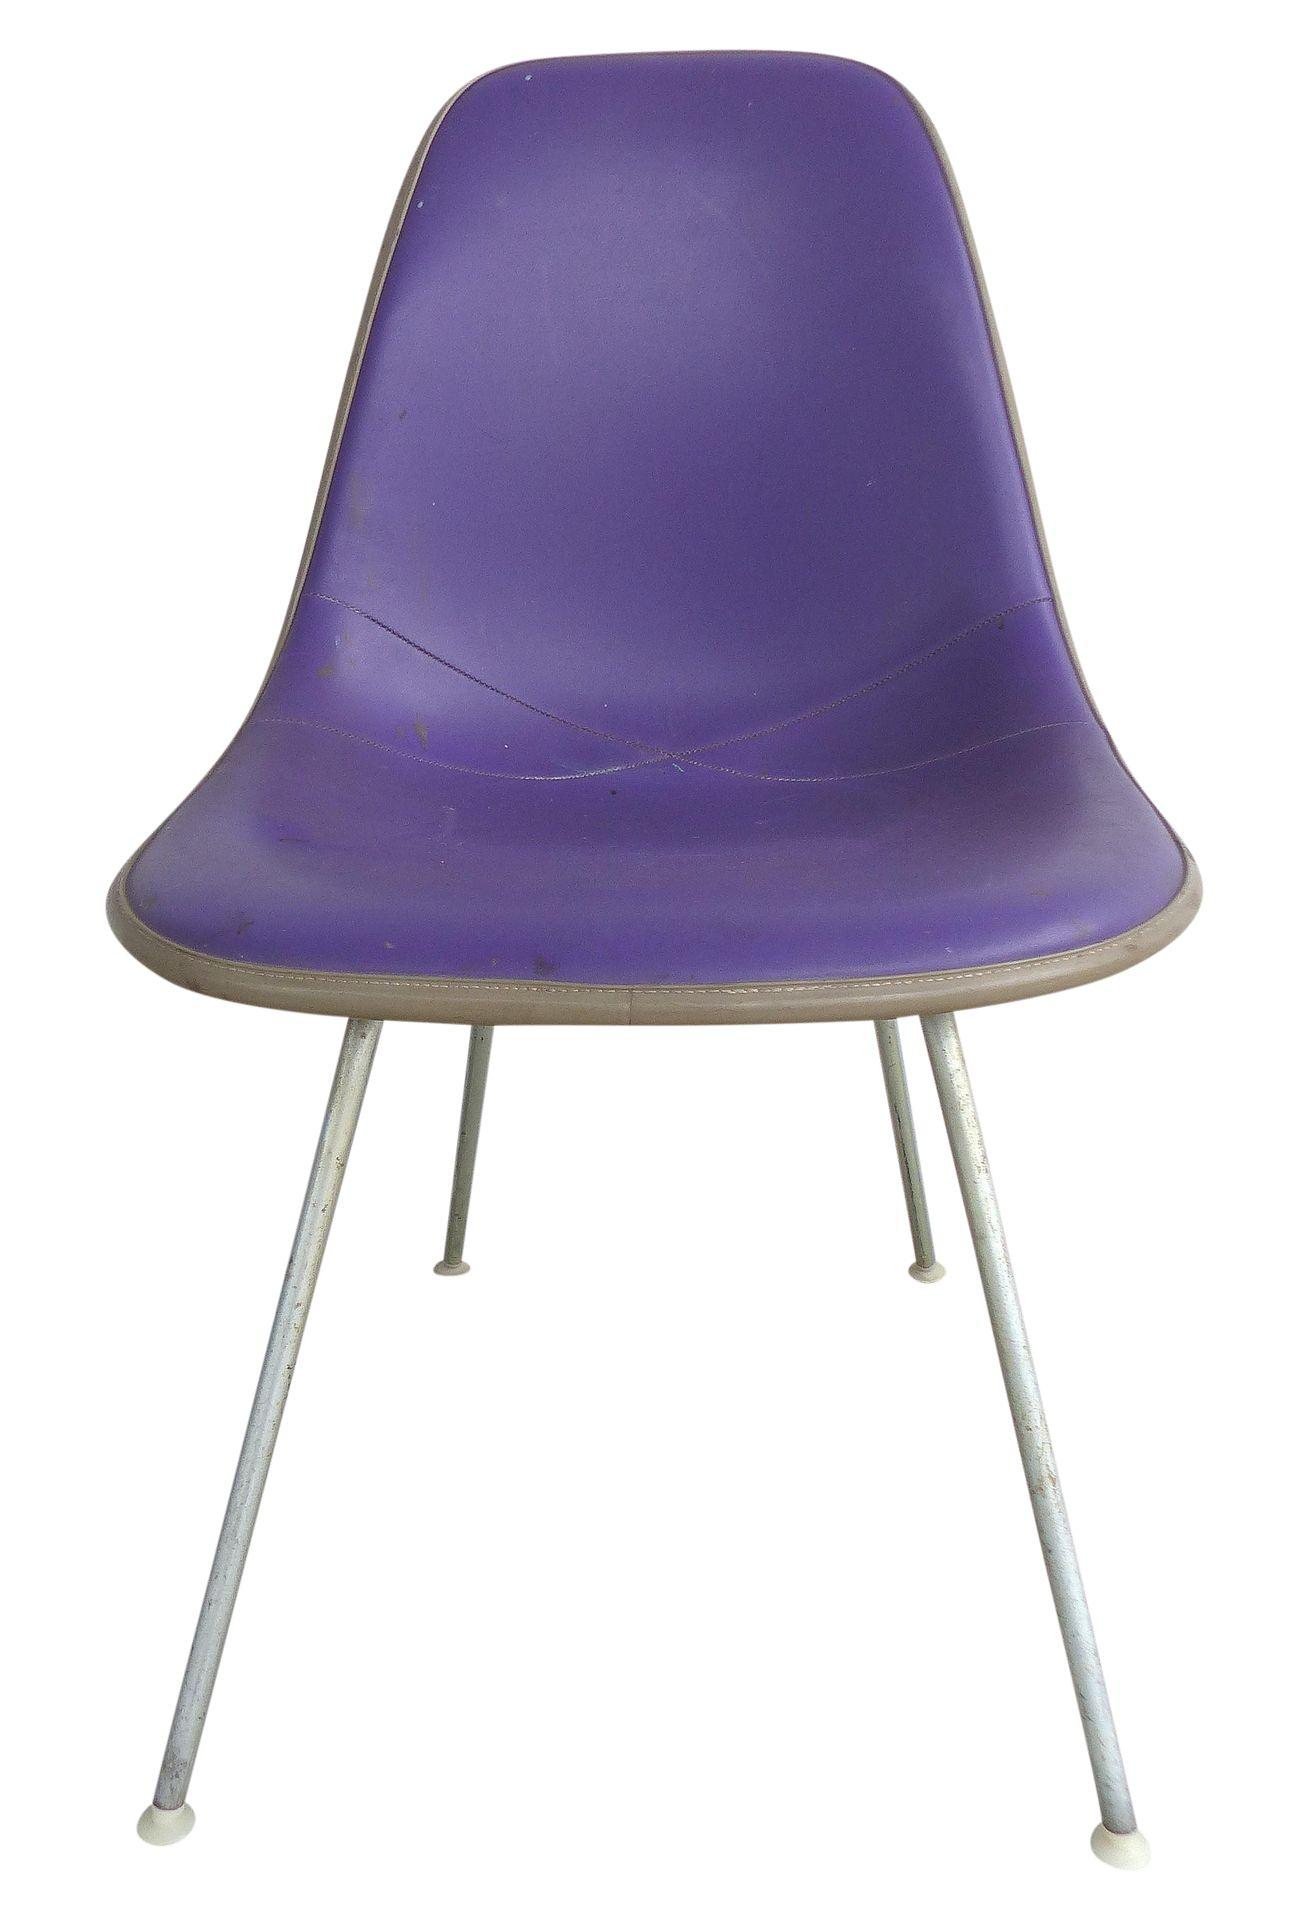 charles eames shell chair for herman miller modernism